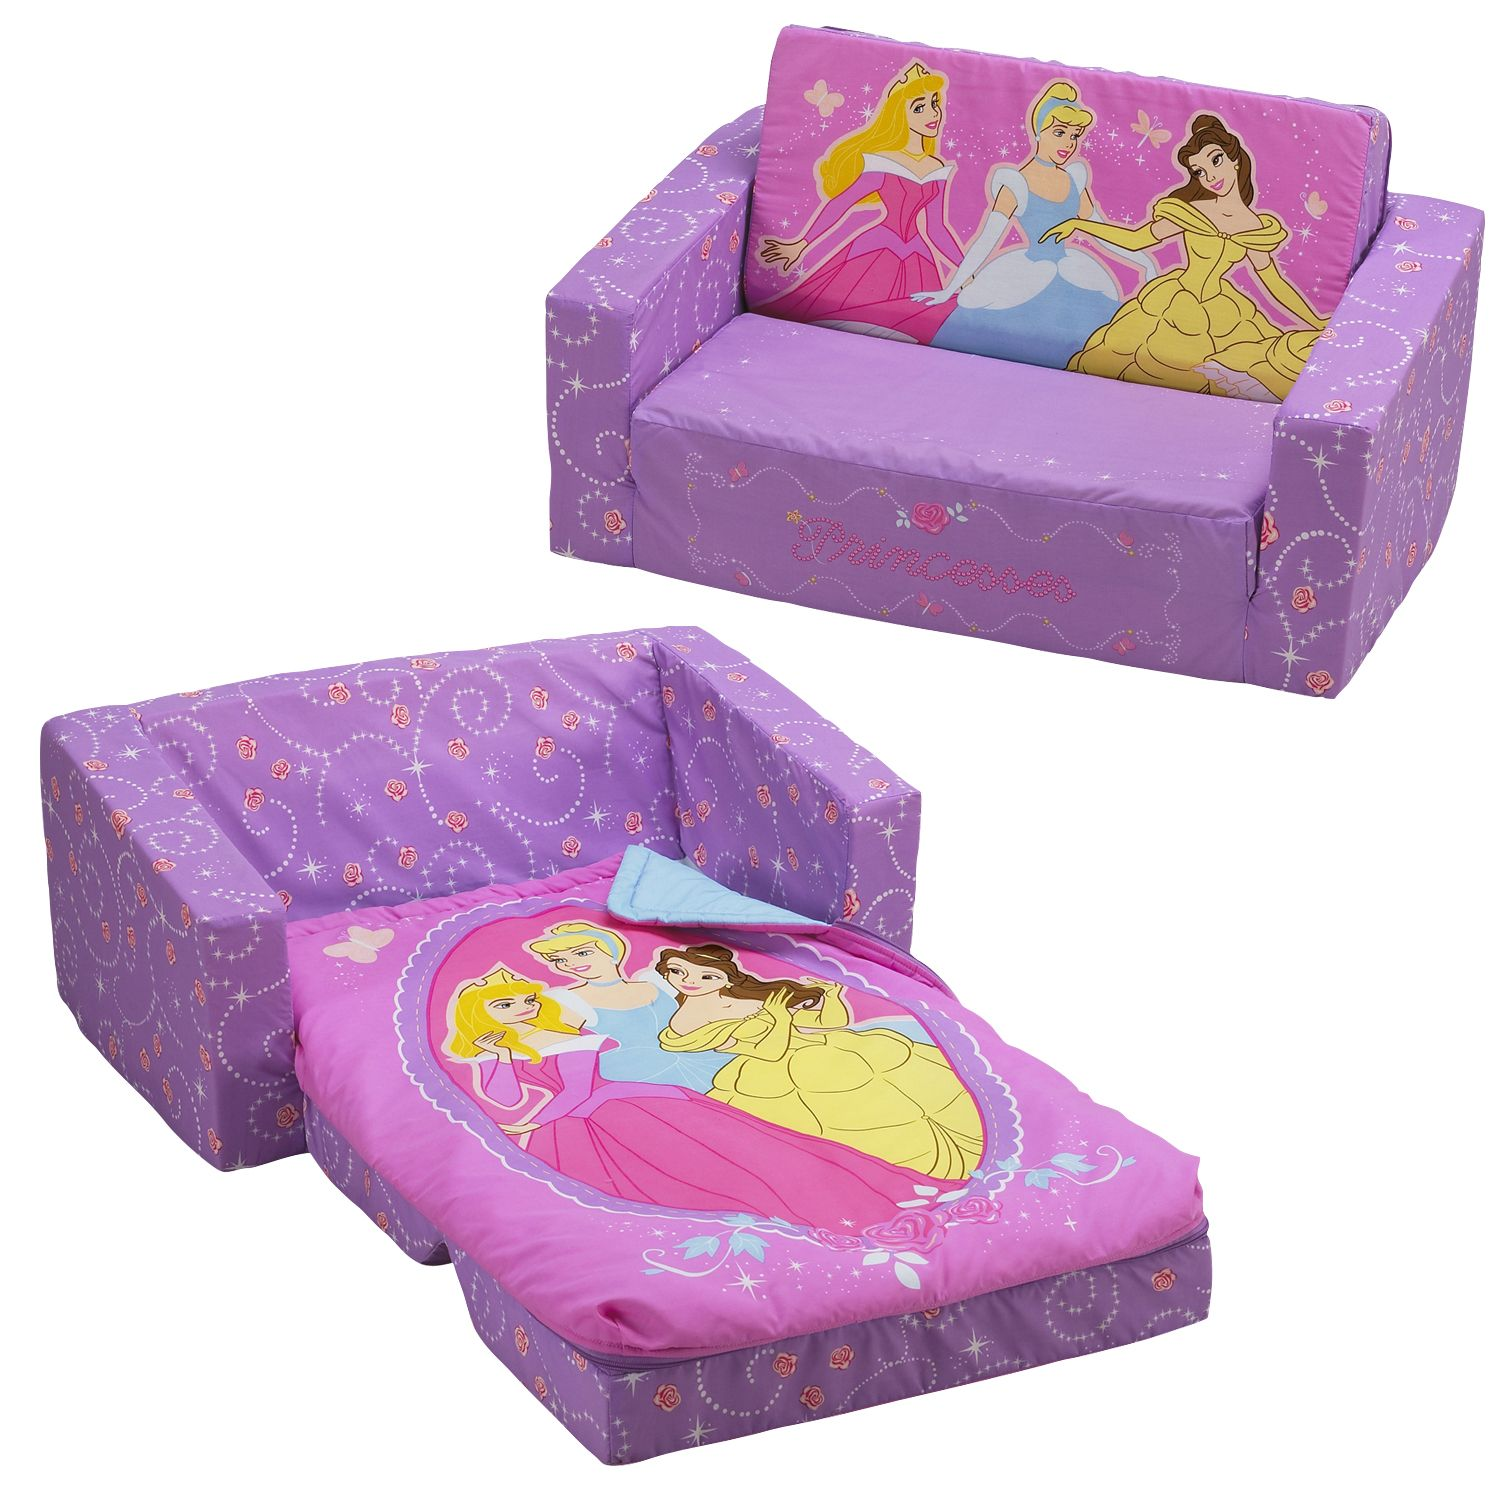 disney princess flip out sofa mart corpus christi with slumber bag home